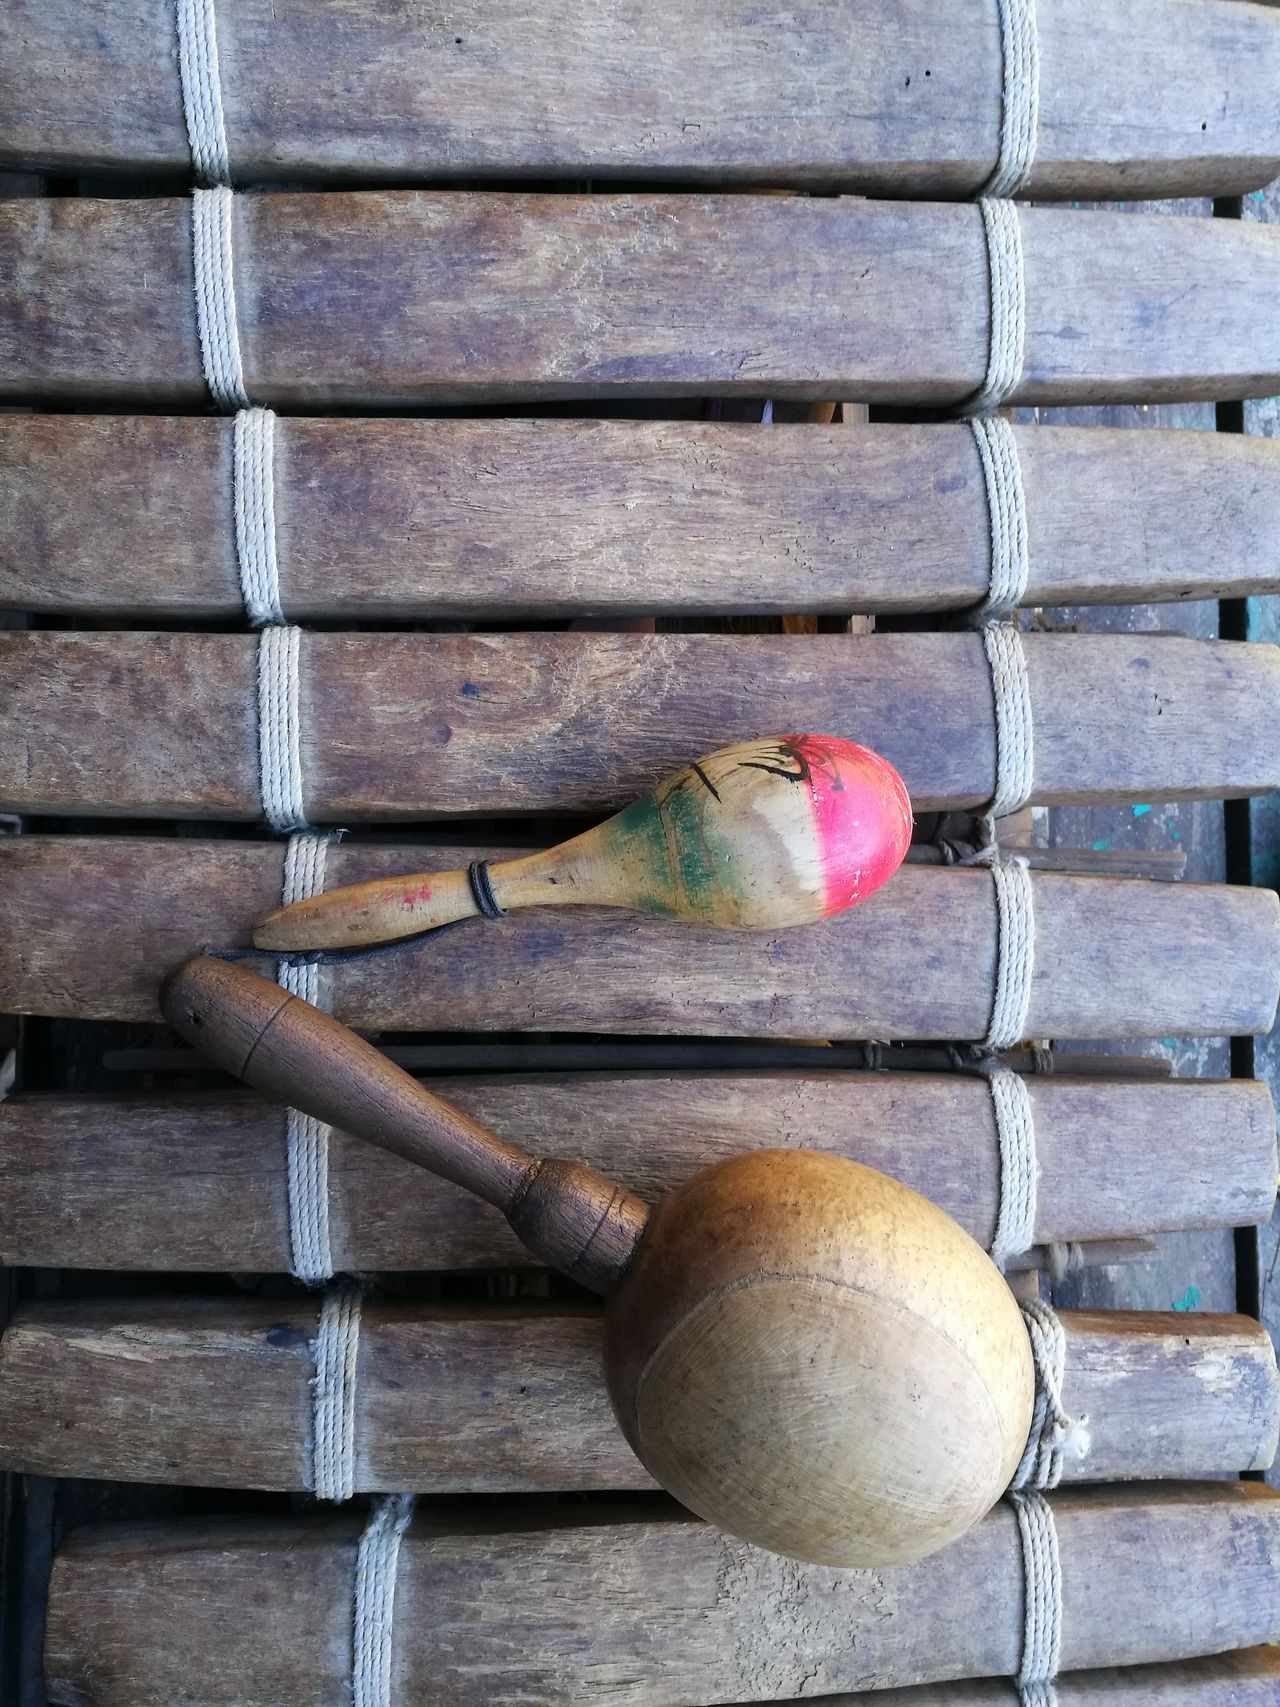 Choice Close-up Day In A Row Multi Colored Musical Instrument No People Outdoors Percussion Percussion Instrument Wood - Material Xylophone